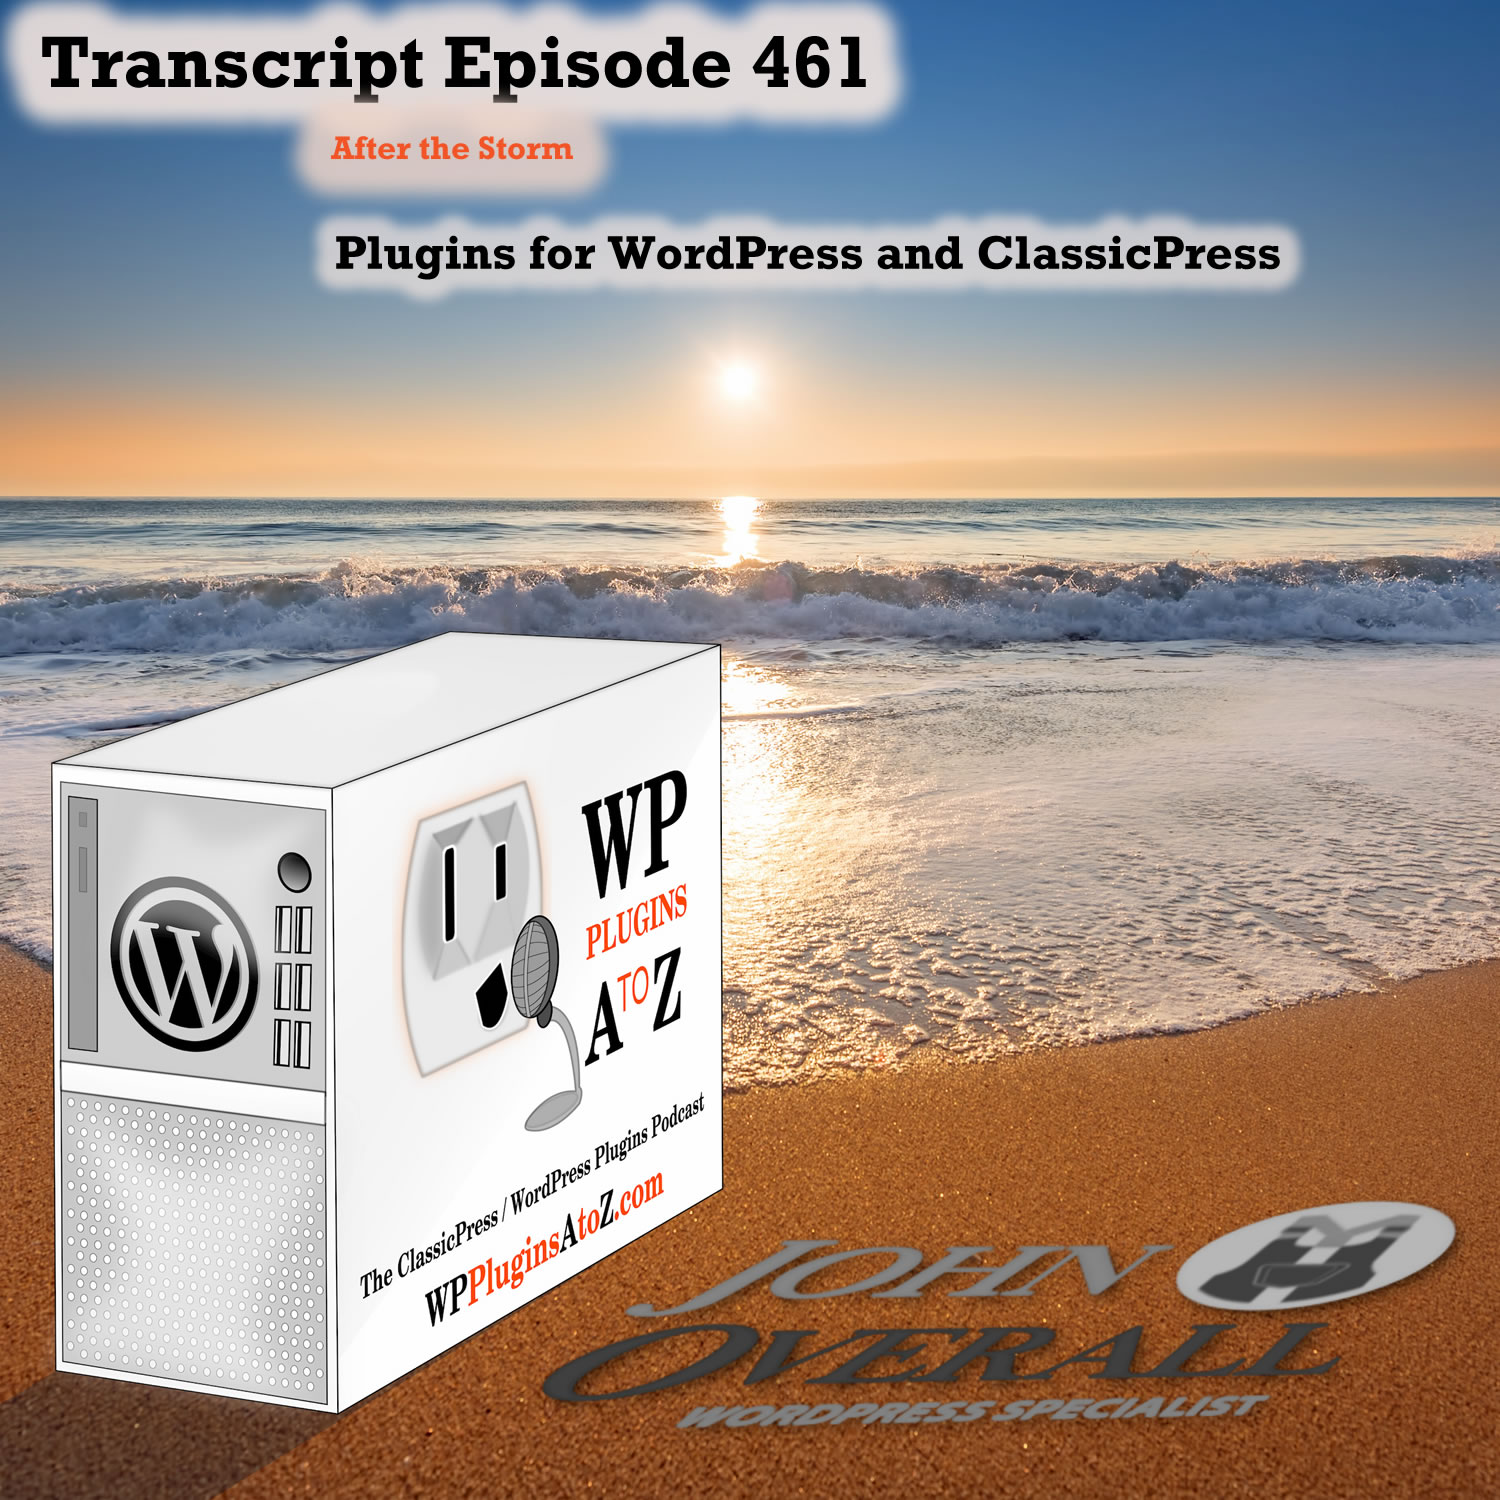 It's Episode 461 with plugins for Merging form data to PDF.s, Controlling your World, Exporting to PDF, Stopping the XML-RPC and ClassicPress Options. It's all coming up on WordPress Plugins A-Z!